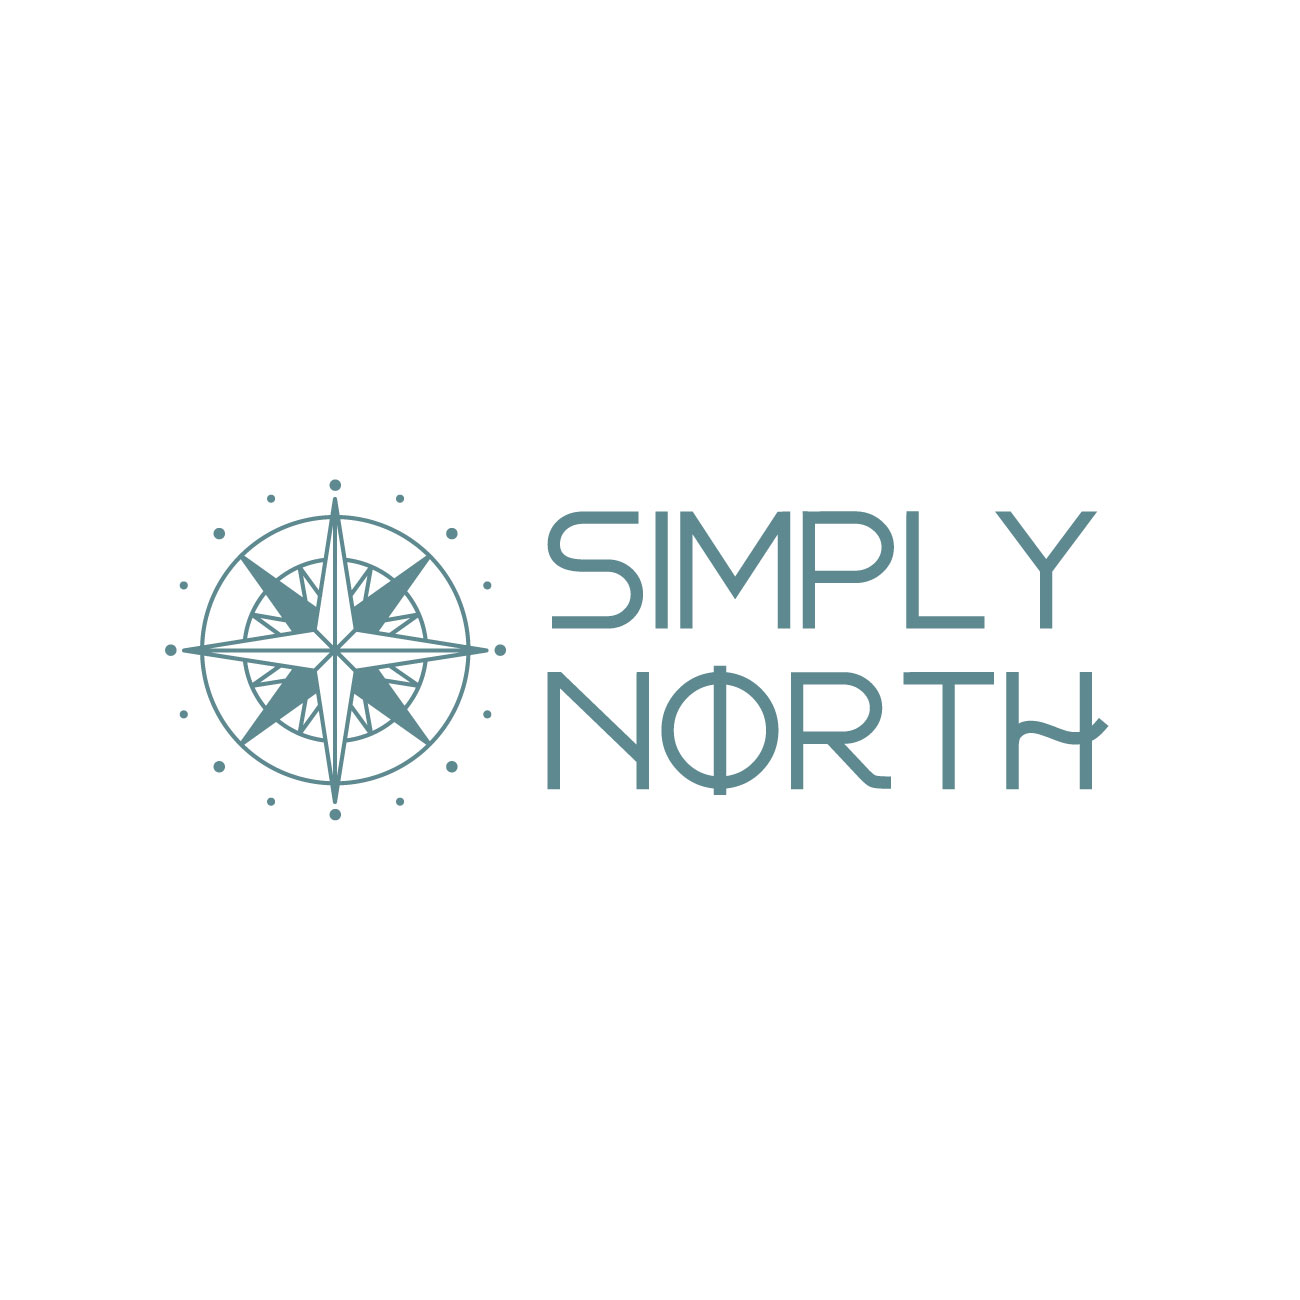 Simply North logo